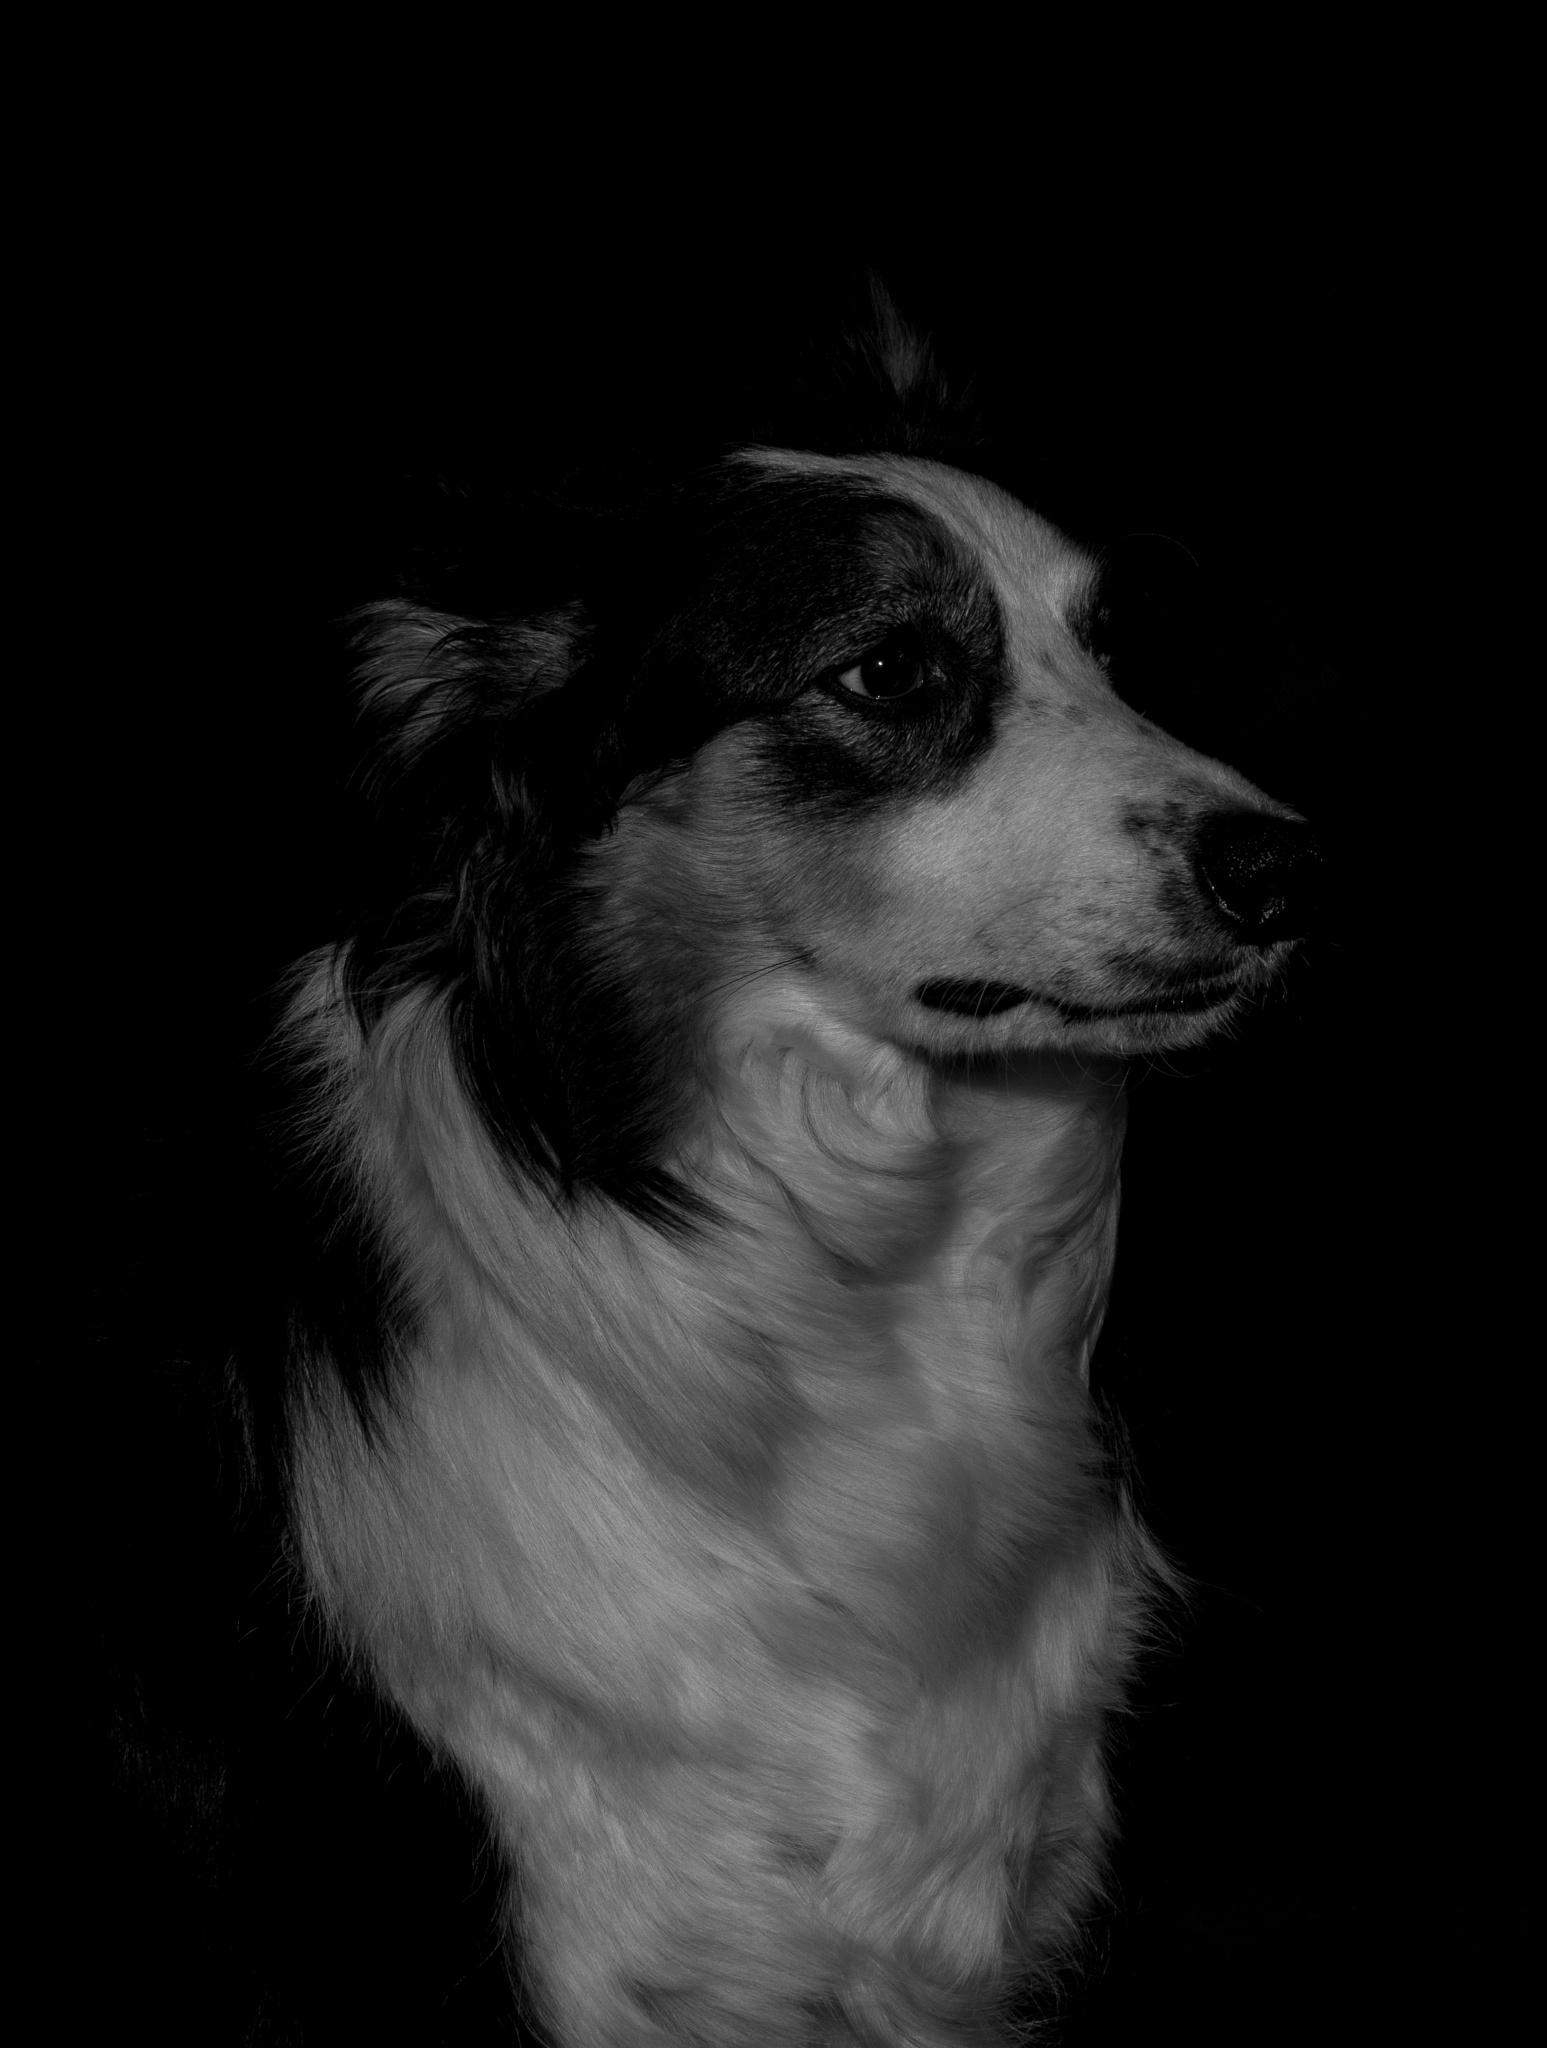 Border Collie by Johnrutherford84